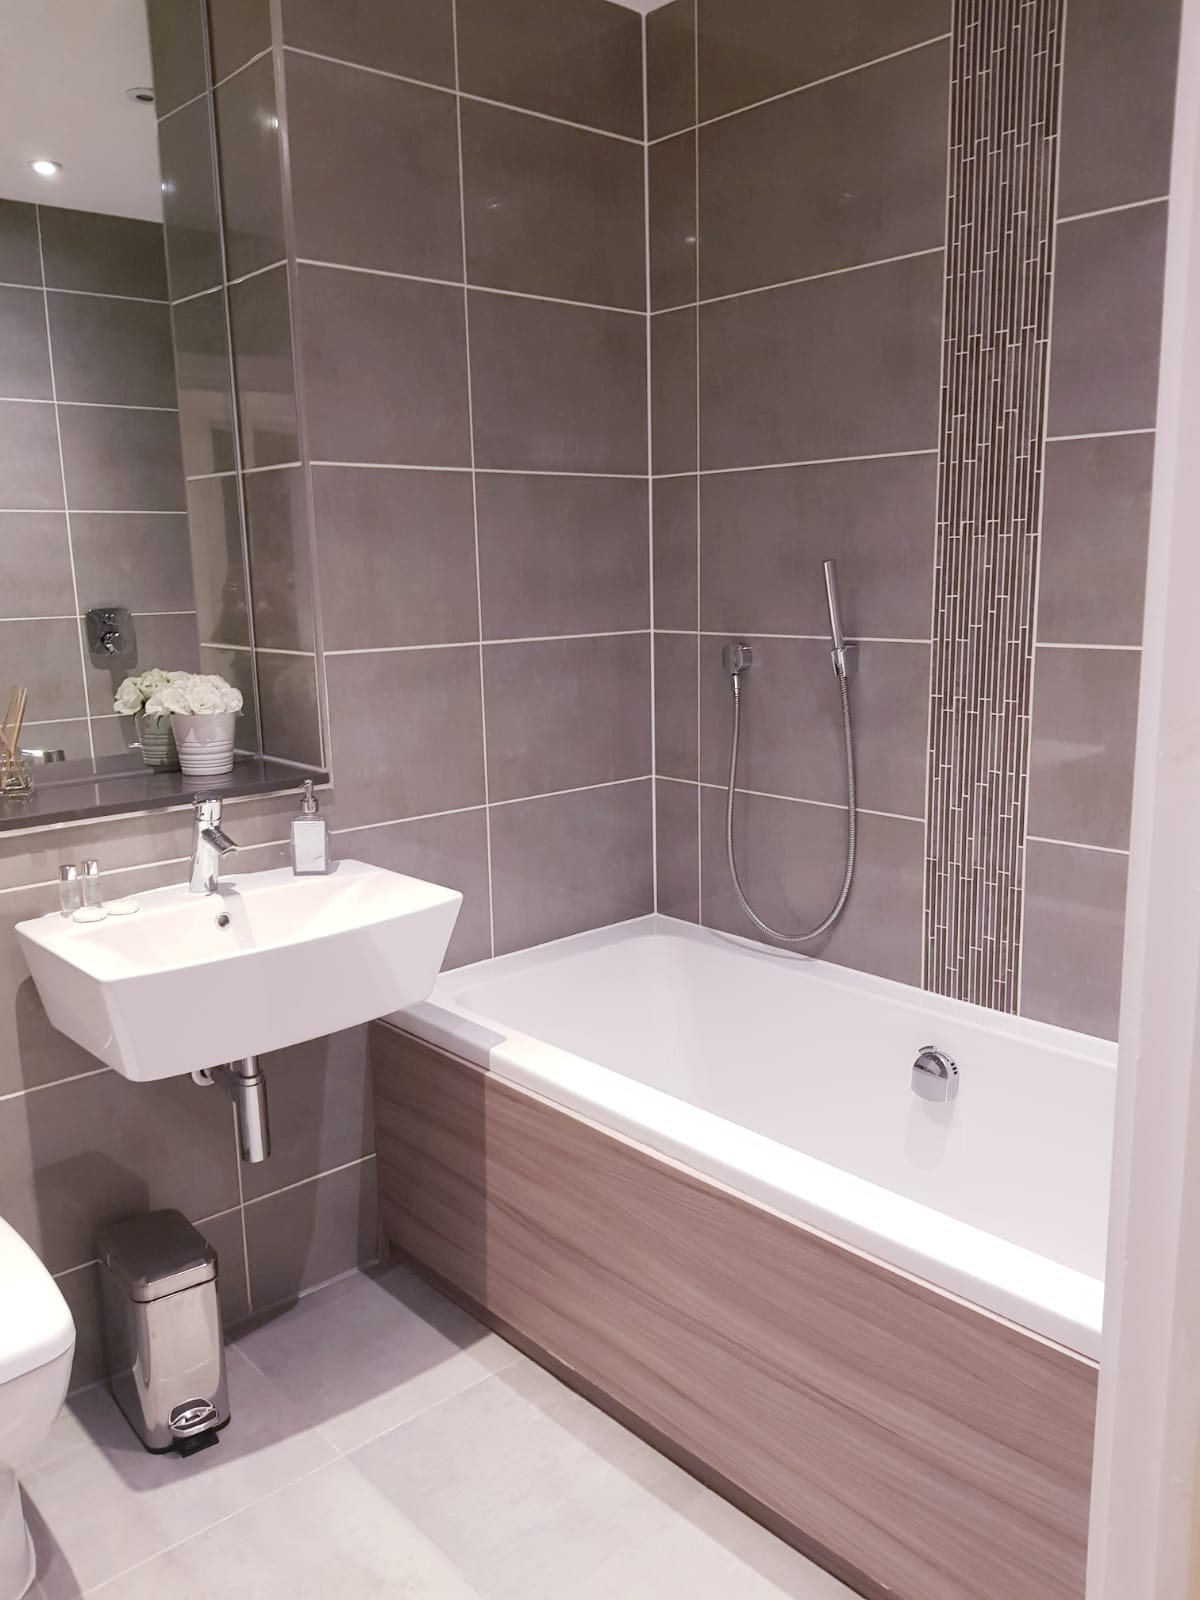 Bathroom at Noble House Apartment, Chiswick, London